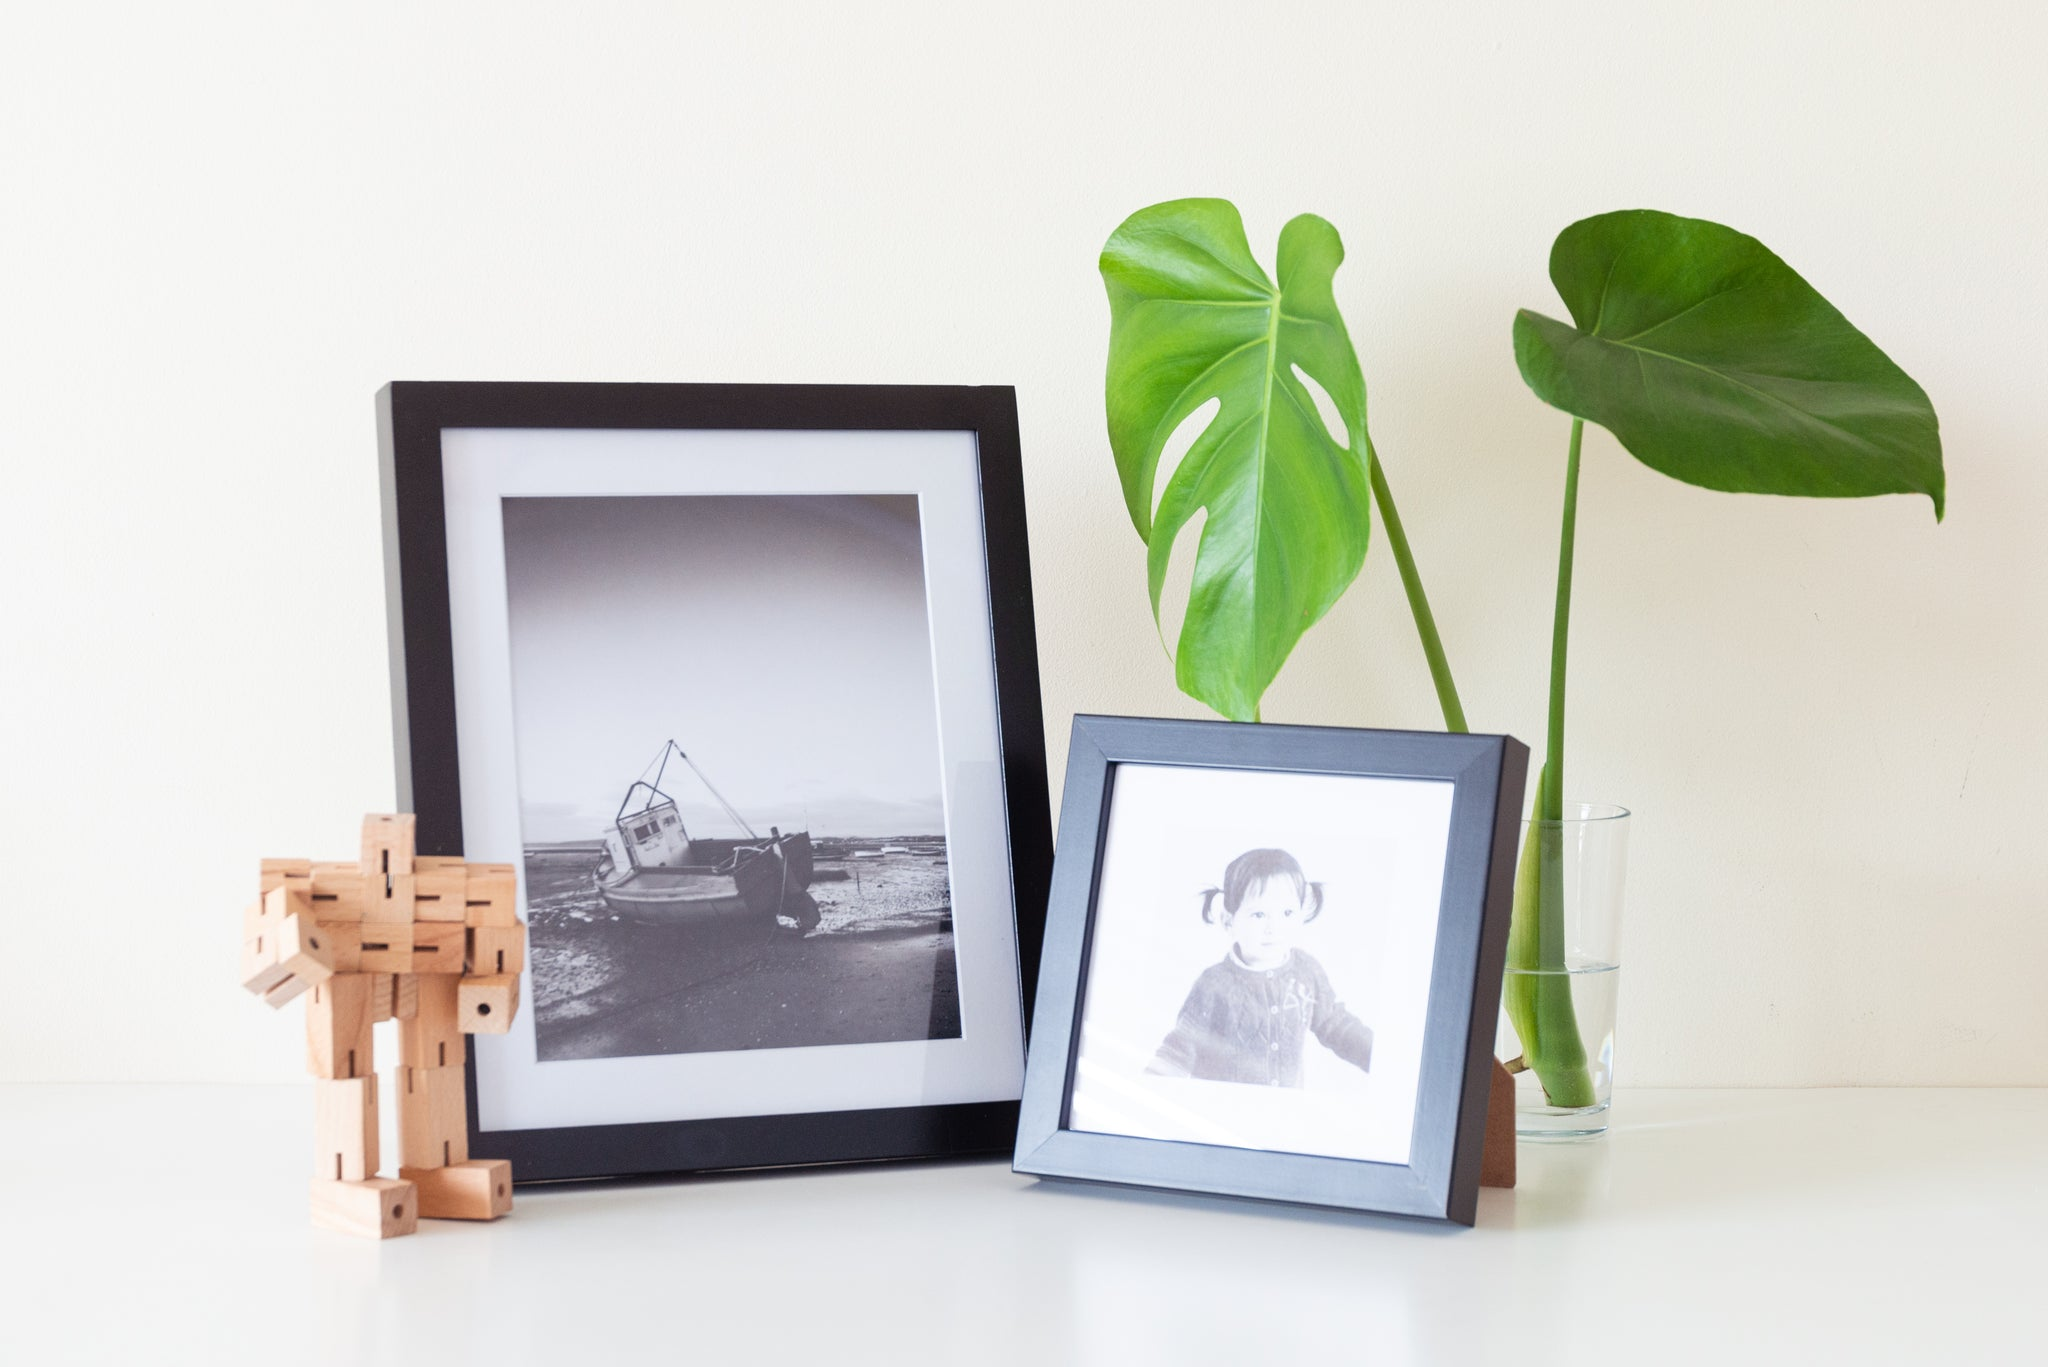 (PRE-ORDER) Black Solid Wood Frame + Photographic Print